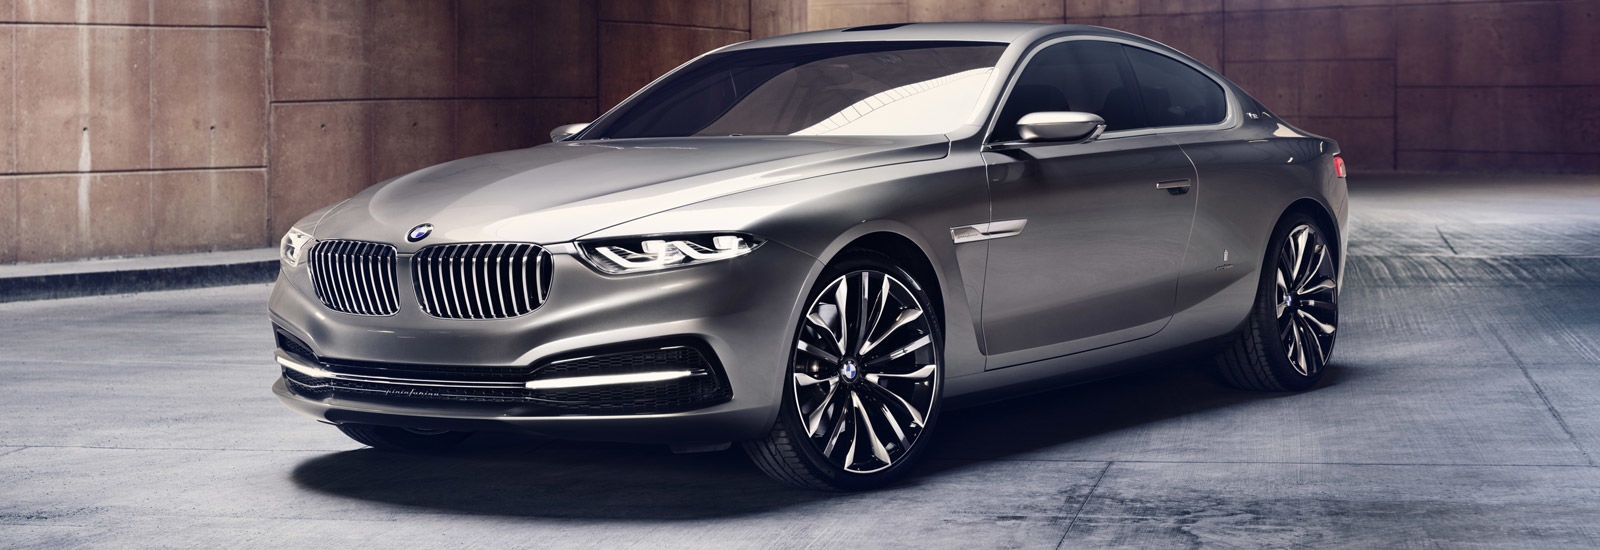 New bmw 8 series price specs release date carwow - Filename Bmw Gran Lusso Concept Jpg